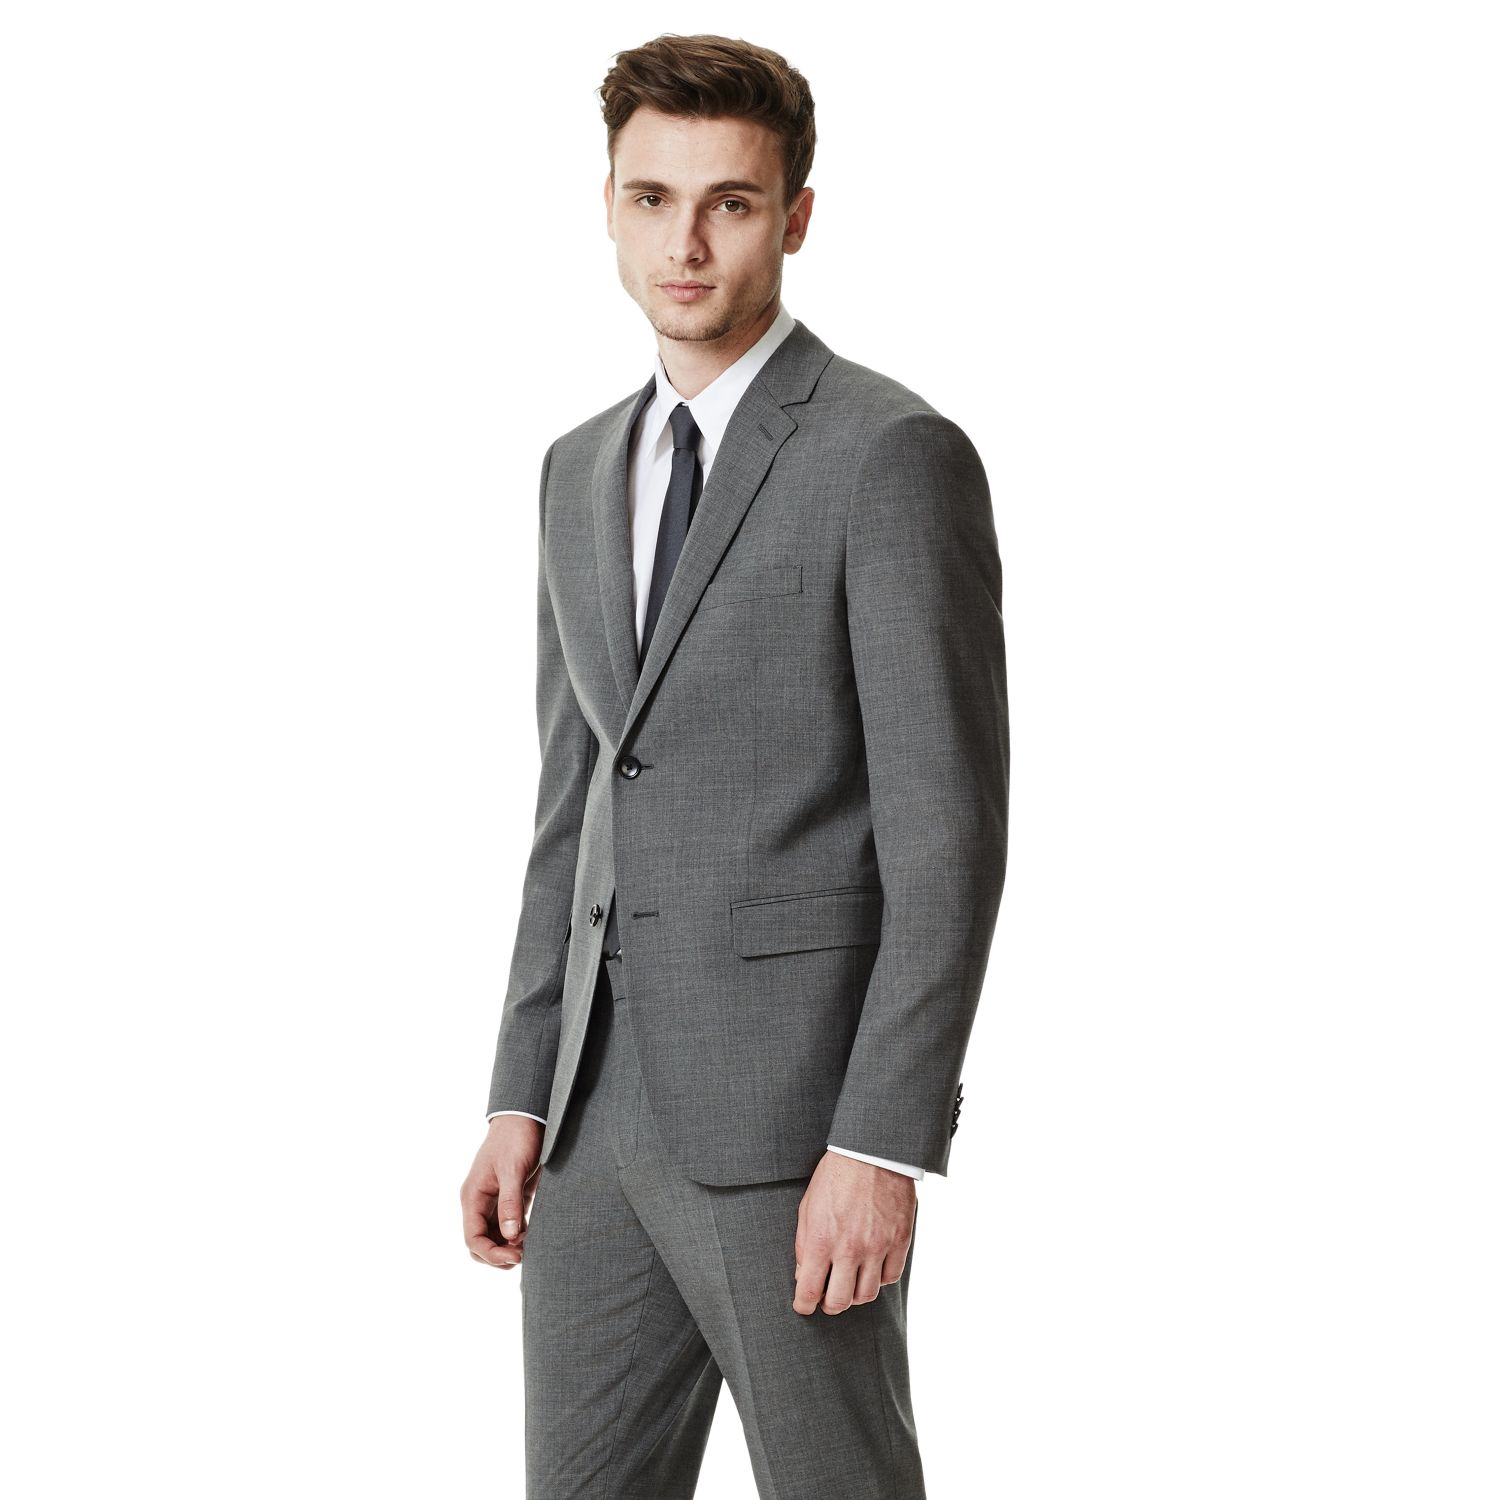 ef799ff105fc Lyst - Theory Wellar Hc Suit Jacket In New Tailor in Gray for Men